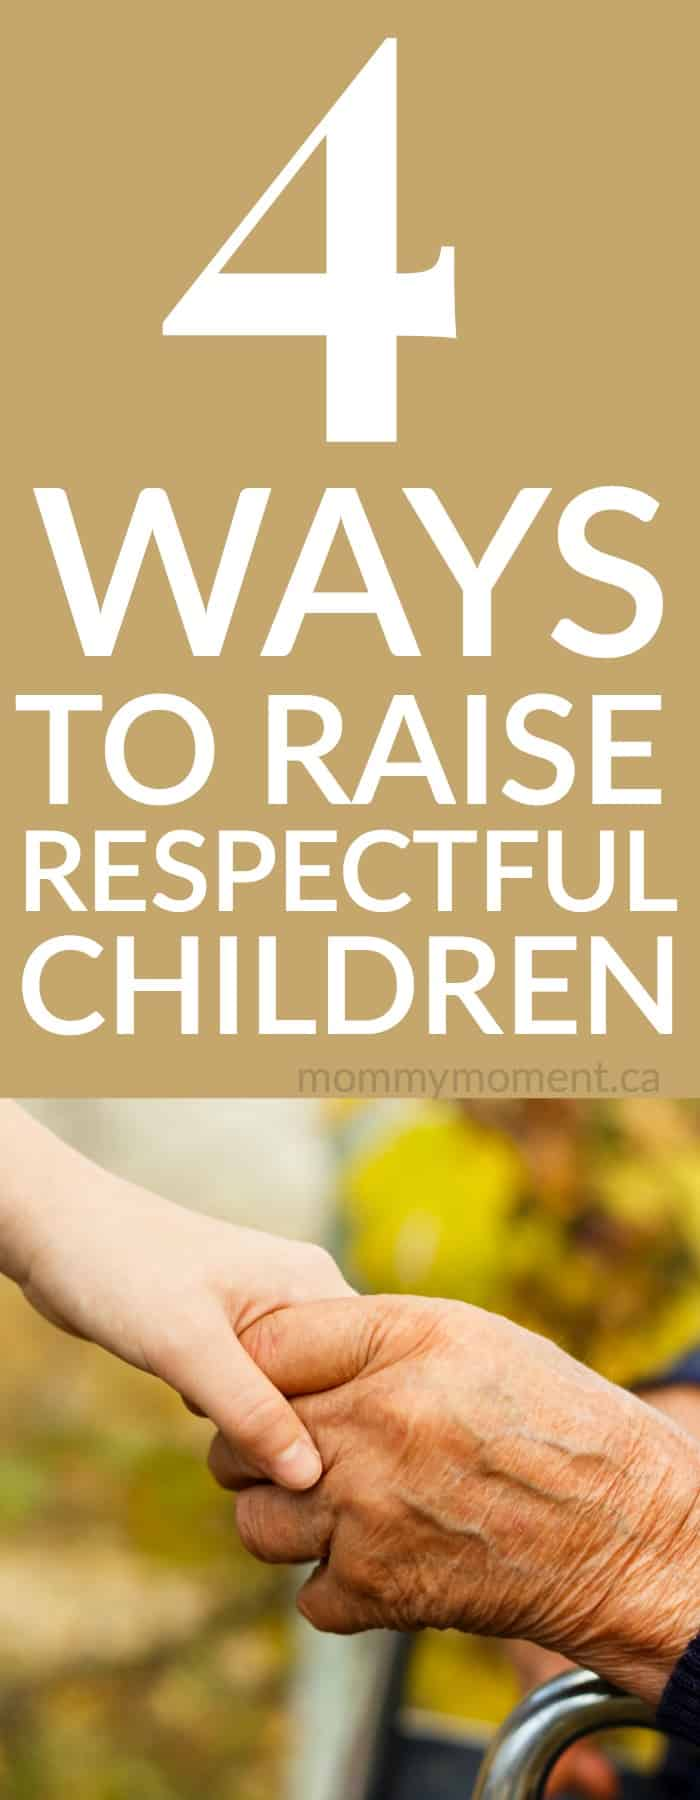 HOW TO RAISE RESPECTFUL CHILDREN